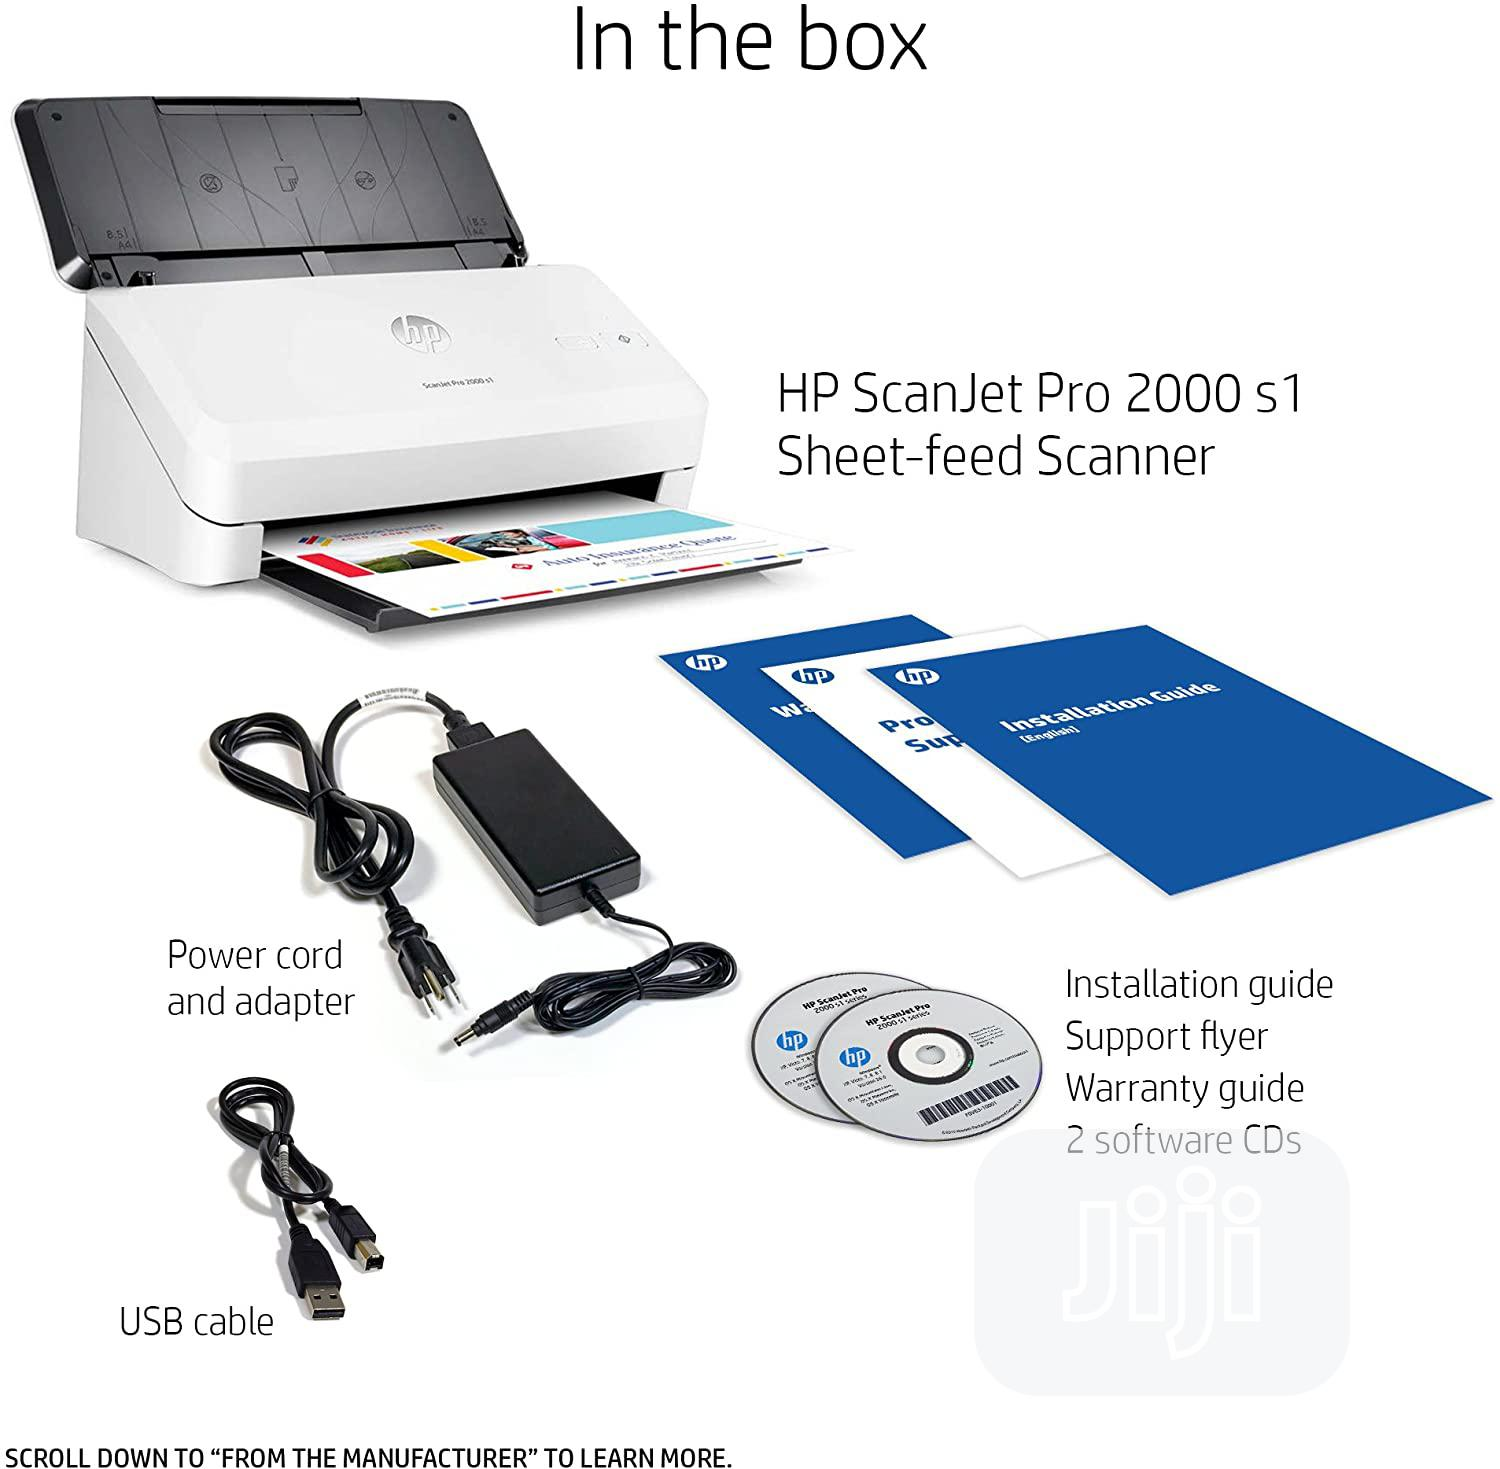 HP Scanjet Pro 2000 S1 Sheet-feed OCR Scanner | Printers & Scanners for sale in Ikeja, Lagos State, Nigeria